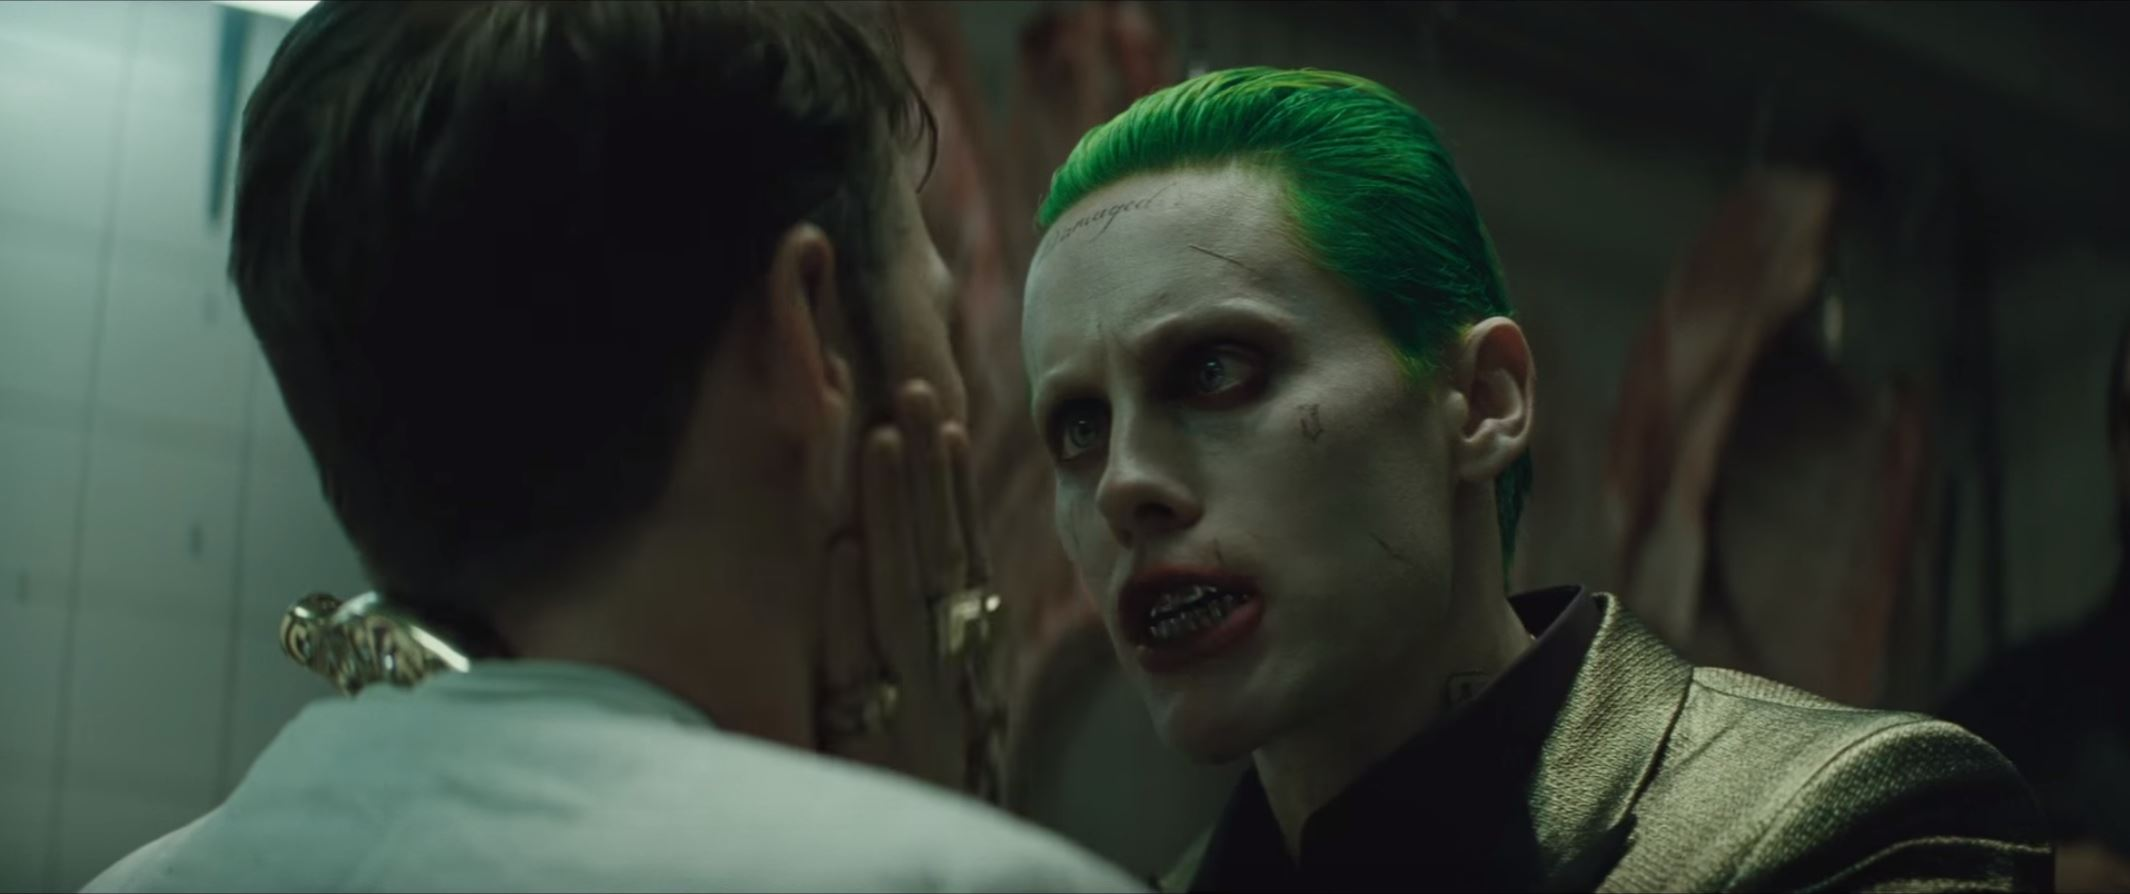 Watch The Crazy New Suicide Squad Trailer!